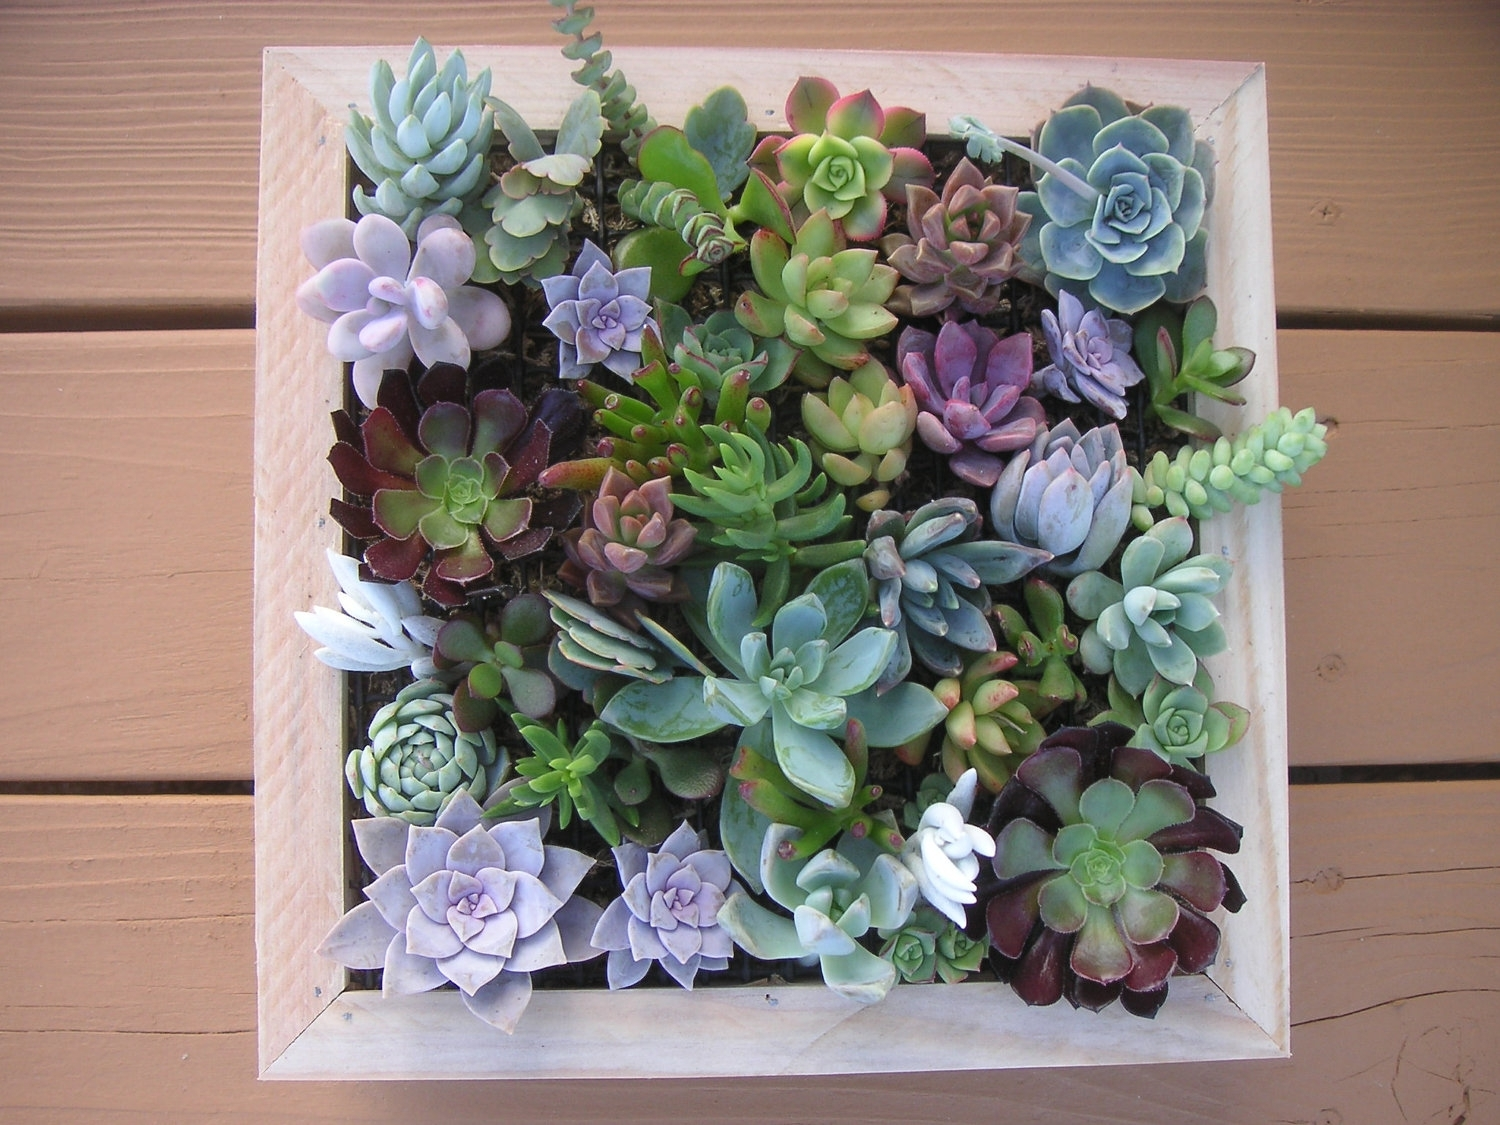 Wall Art Ideas Design Baked Epoxy Succulent Wall Art Give Strenght pertaining to Succulent Wall Art (Image 20 of 20)